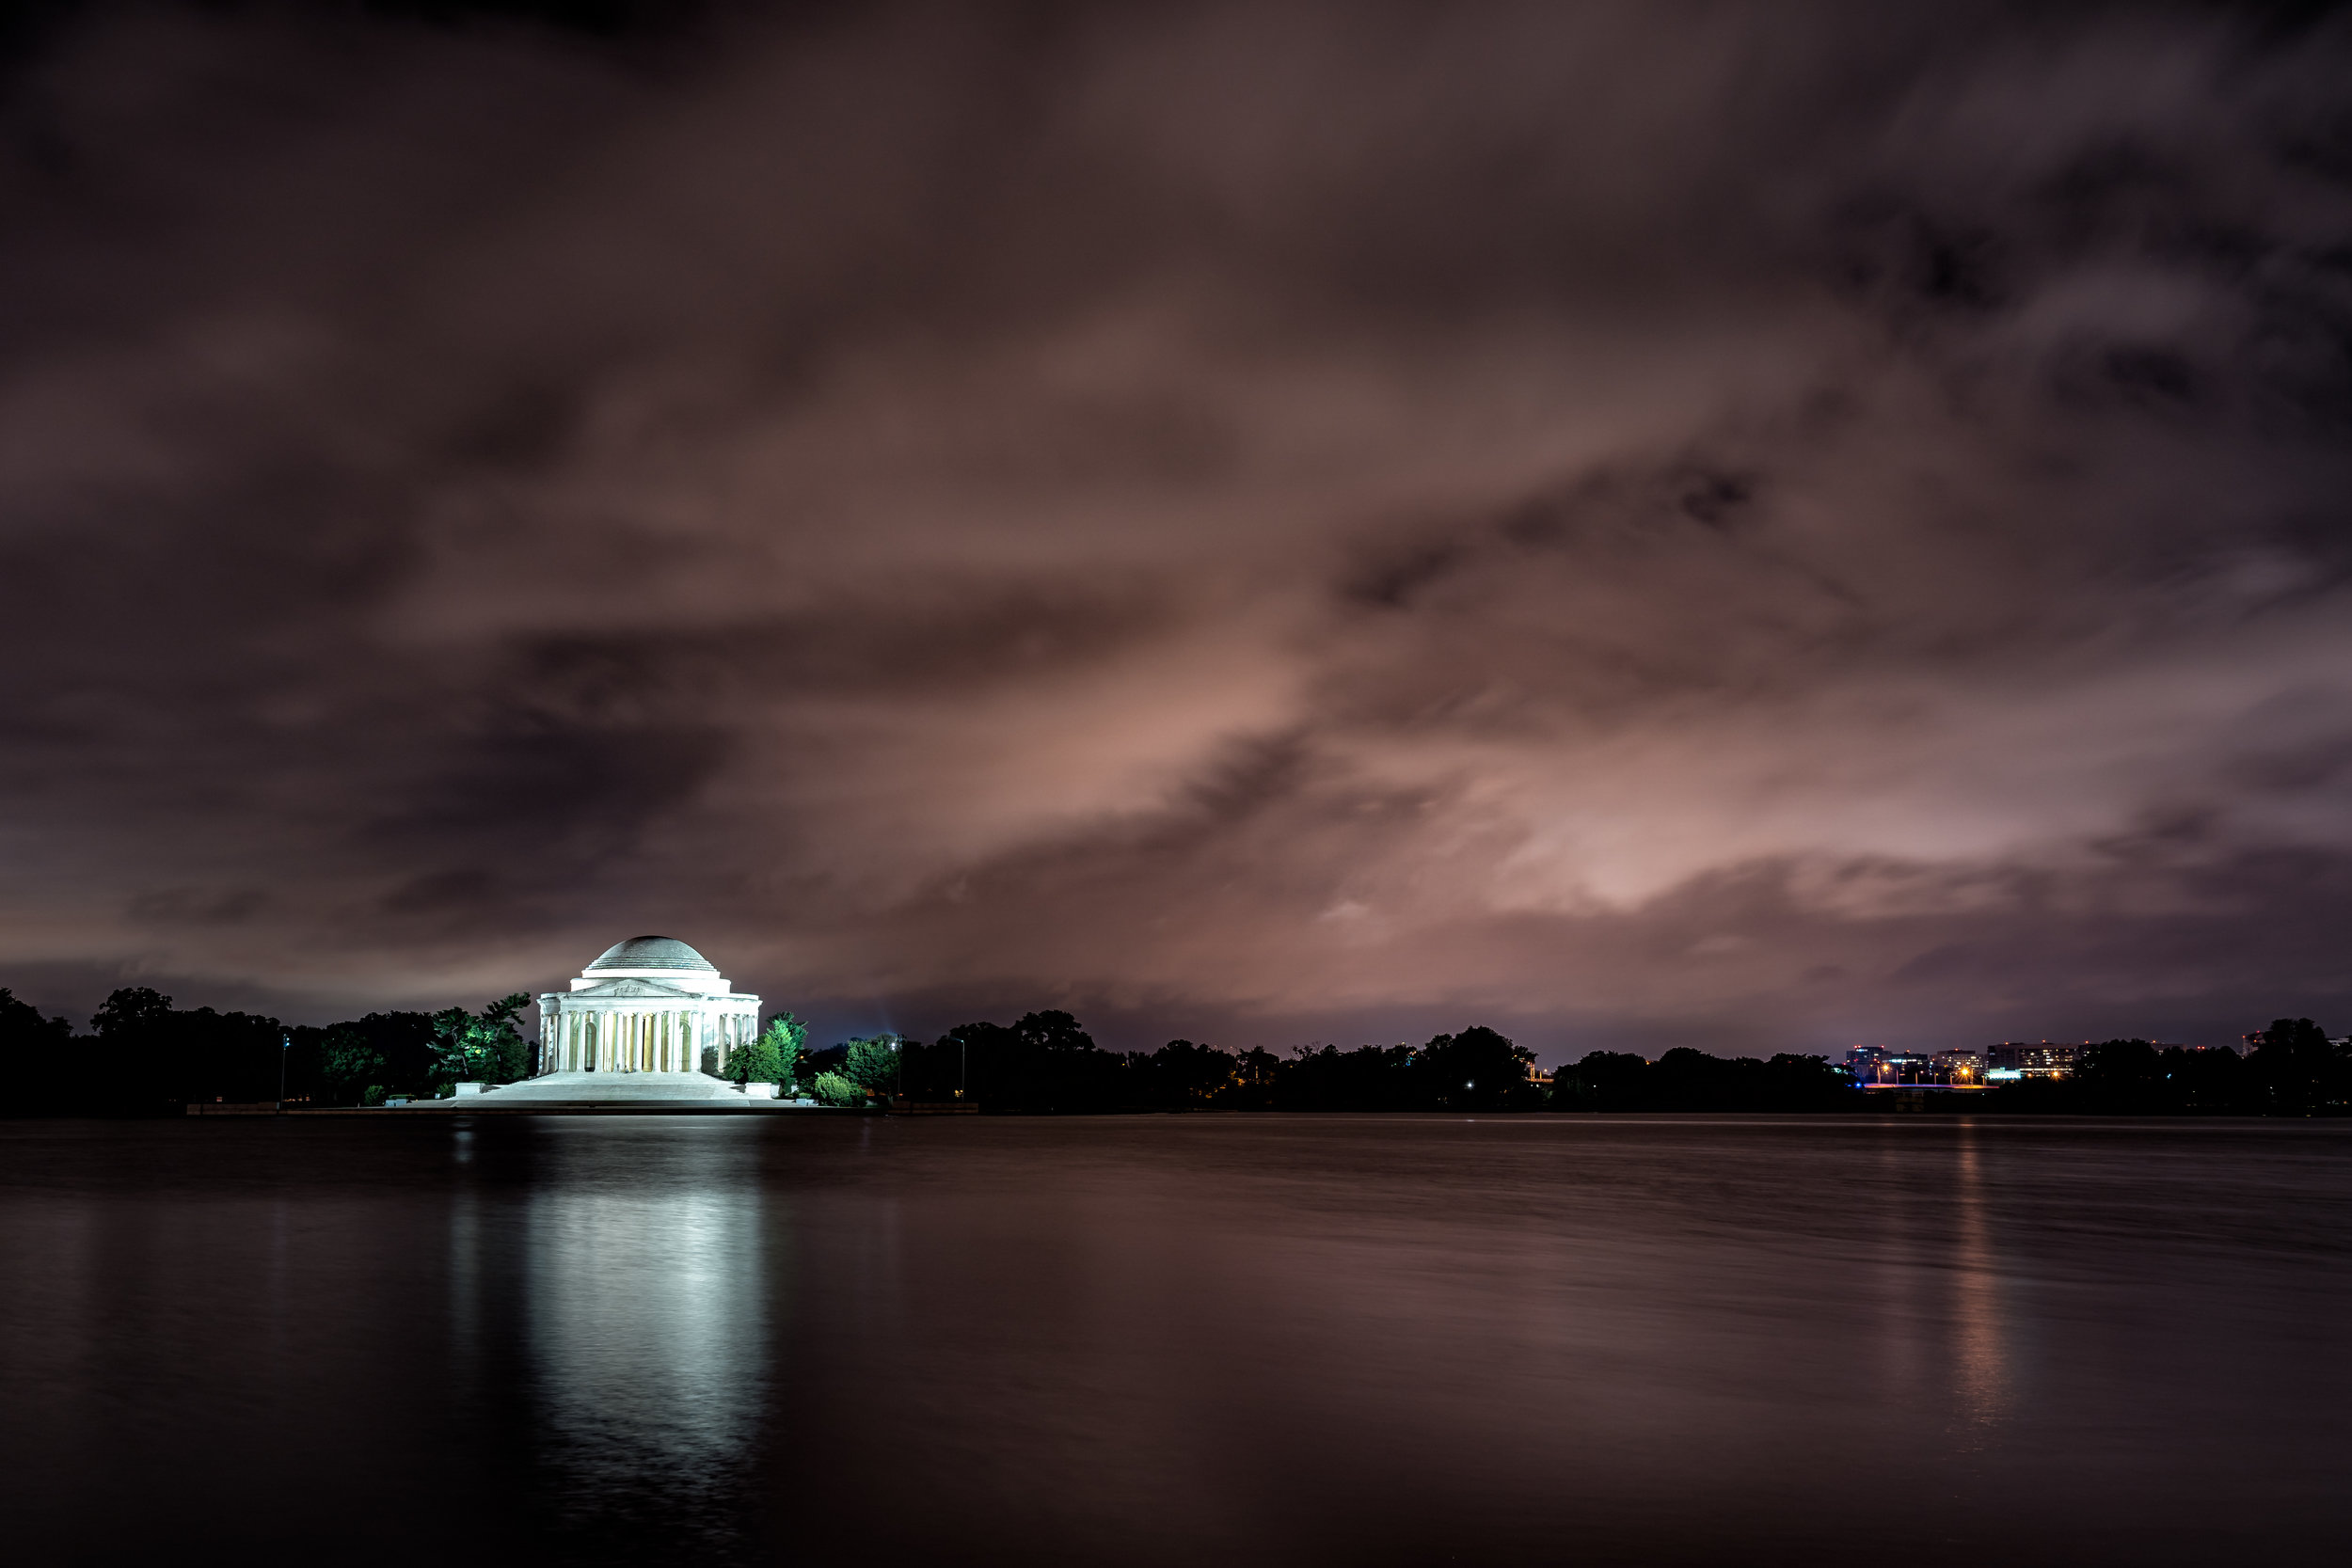 From the edge of the Tidal Basin by the Paddle Board parking lot just after 4am